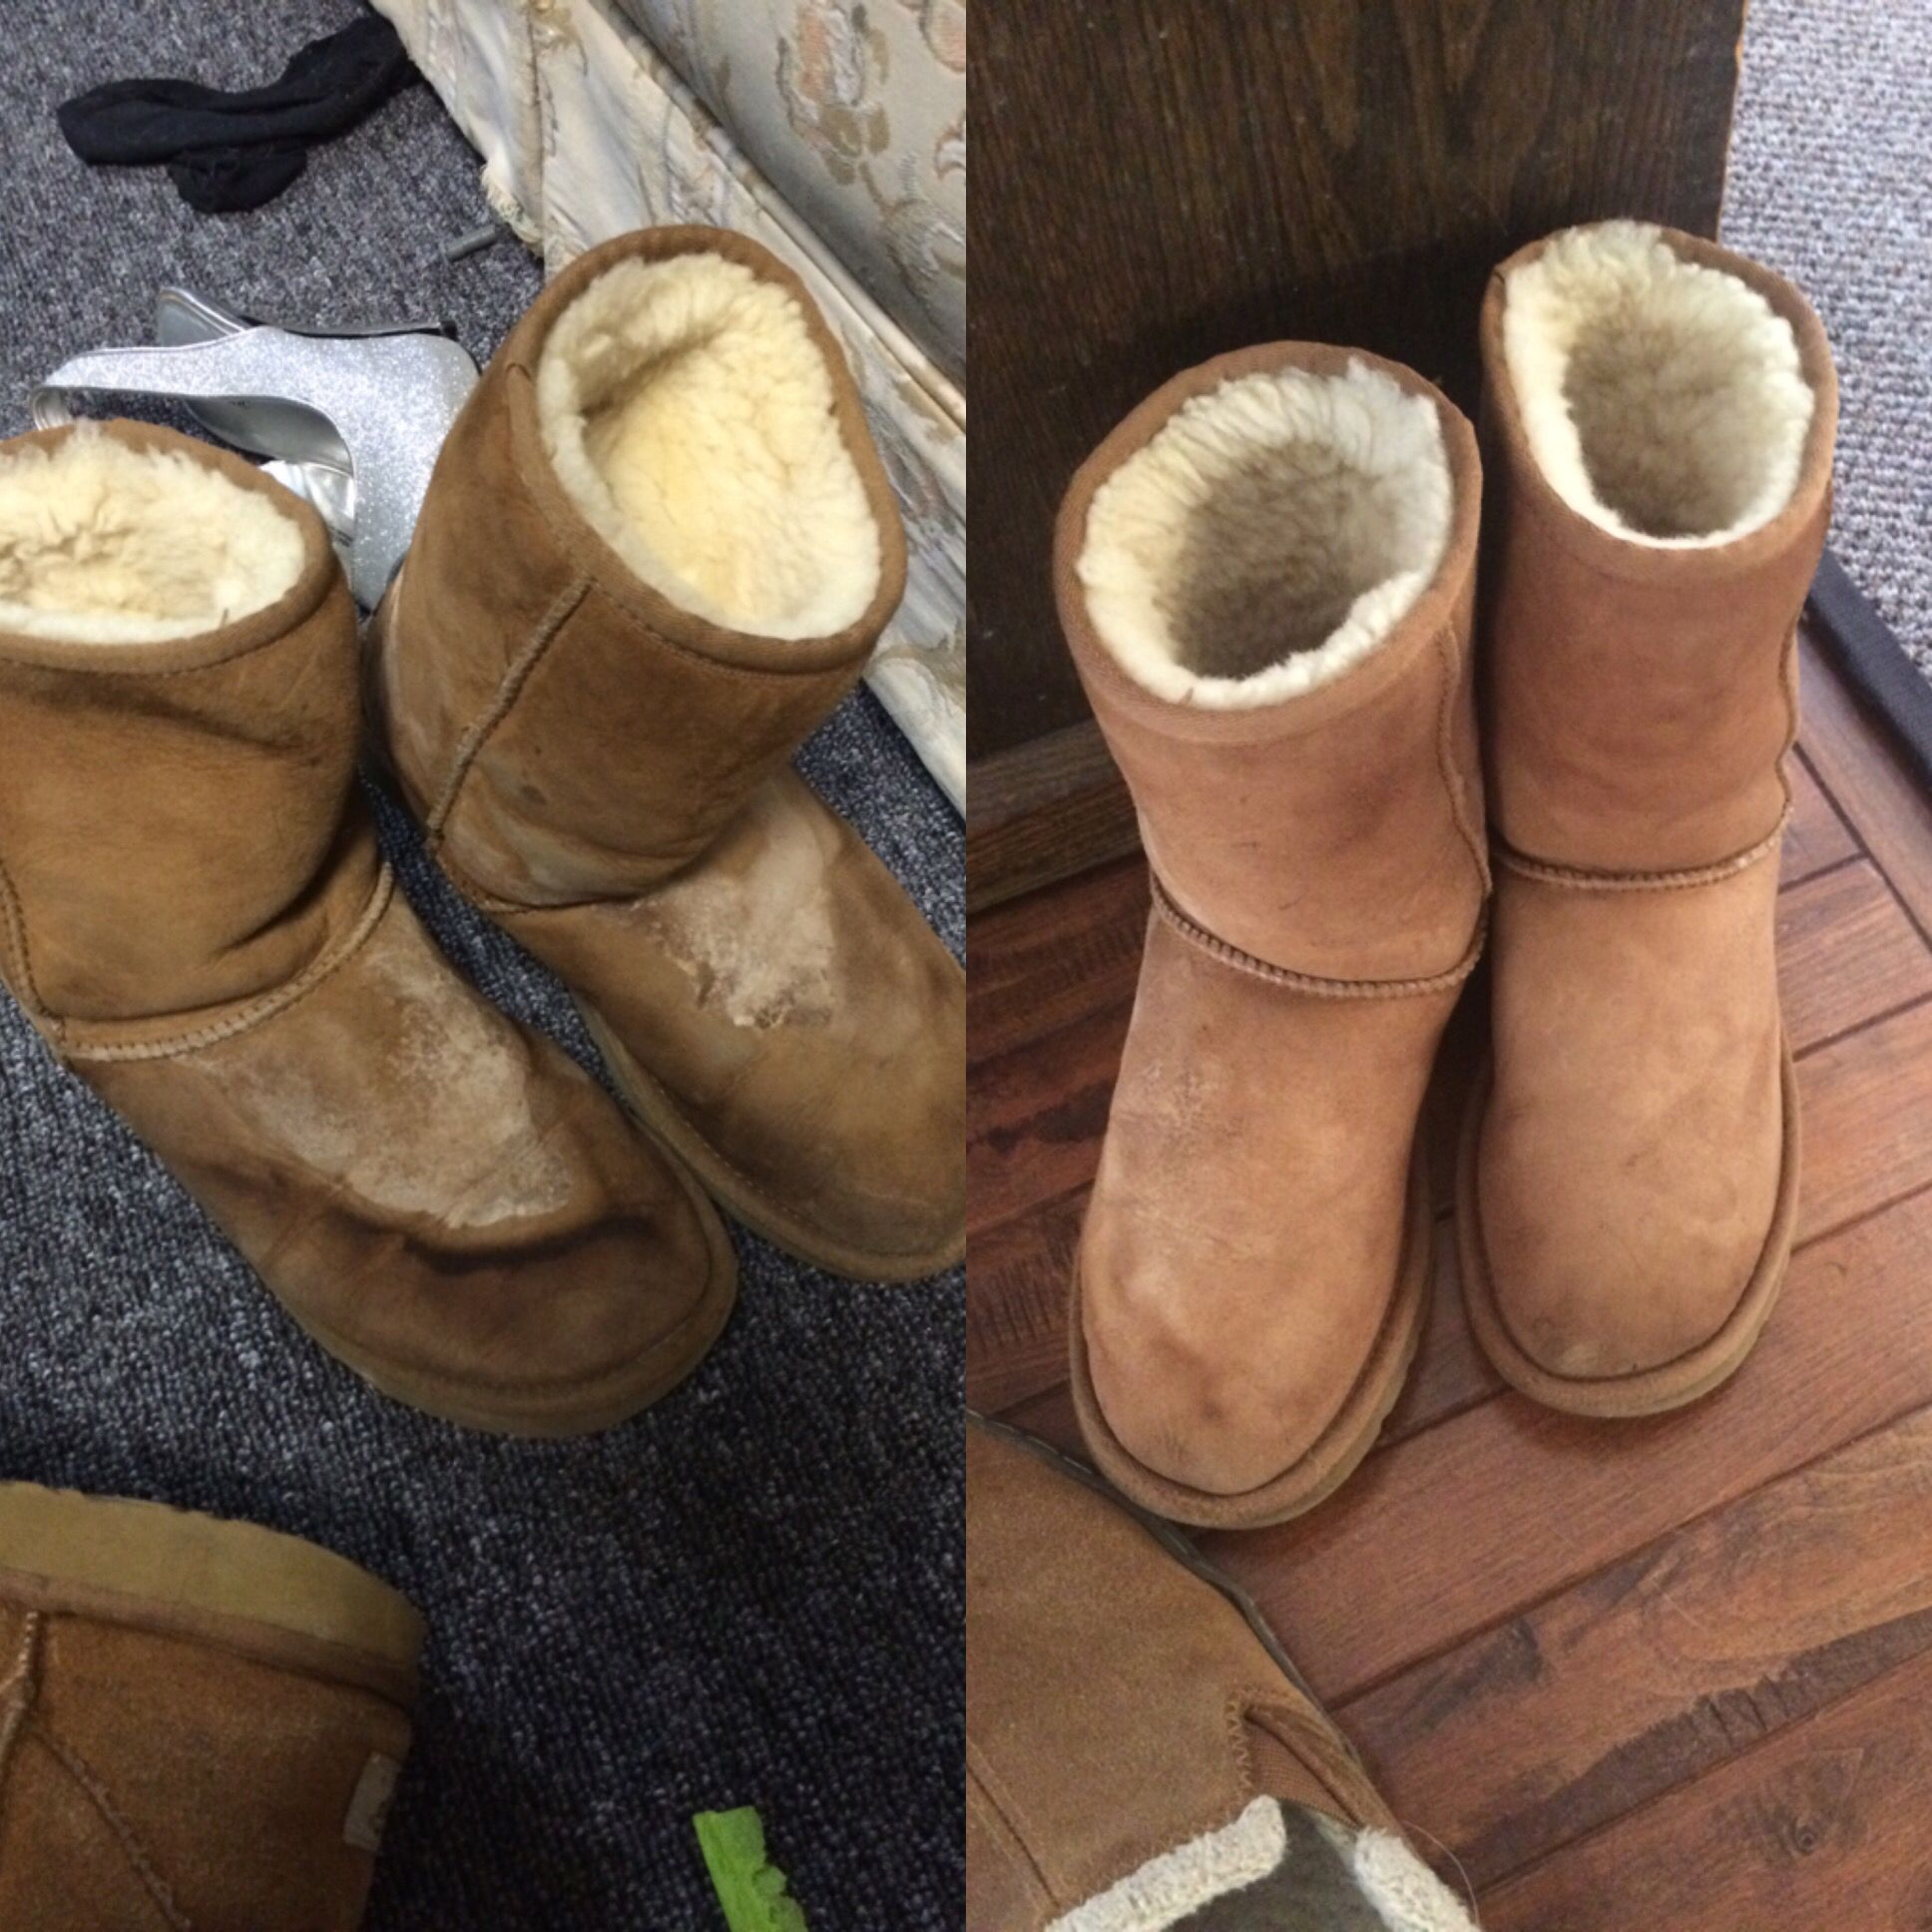 Cobbler S Advice How To Remove White Salt Stains From Suede Without Damaging The Boots Cleaninginstructor Com Ugg Boots Uggs Cleaning Ugg Boots